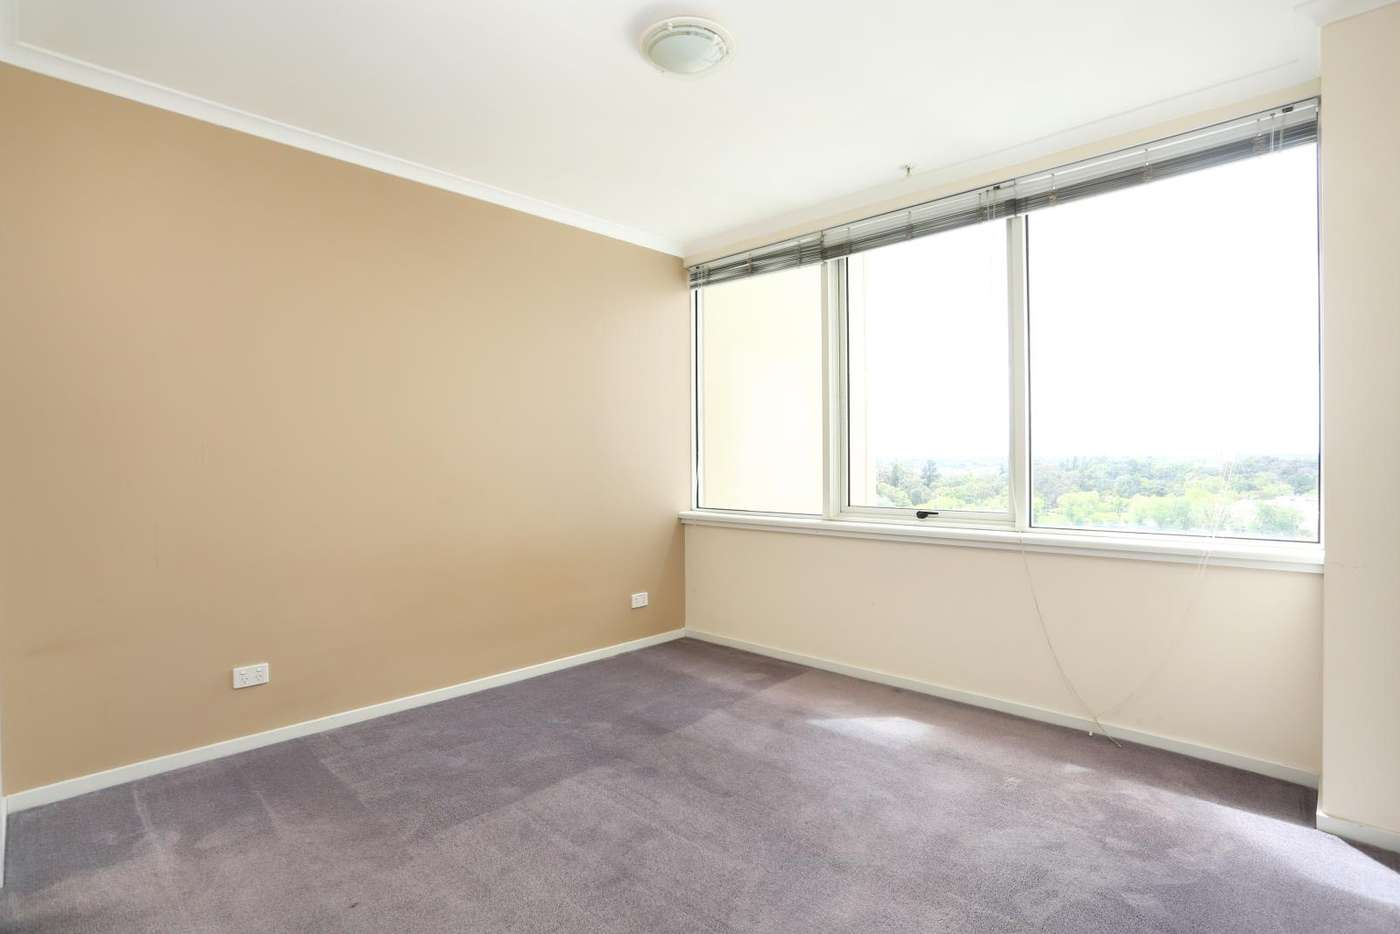 Fifth view of Homely apartment listing, 167/416 St Kilda Road, Melbourne VIC 3004